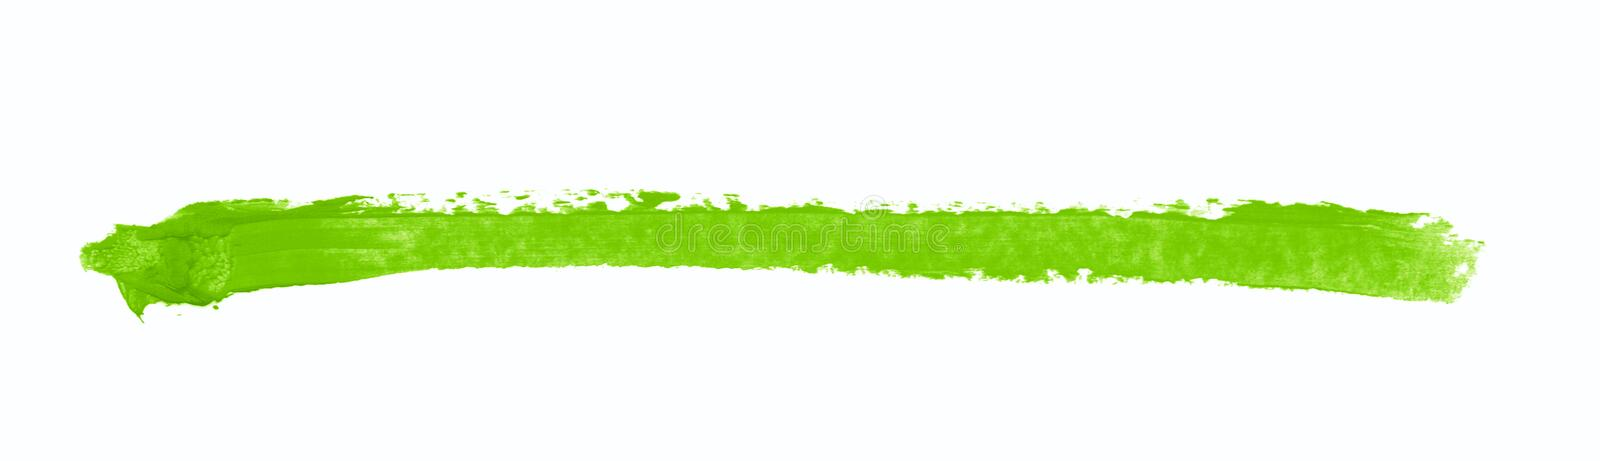 Single line marker stroke isolated. Single line marker stroke of a wax crayon as a design underline element, isolated over the white background royalty free stock photo